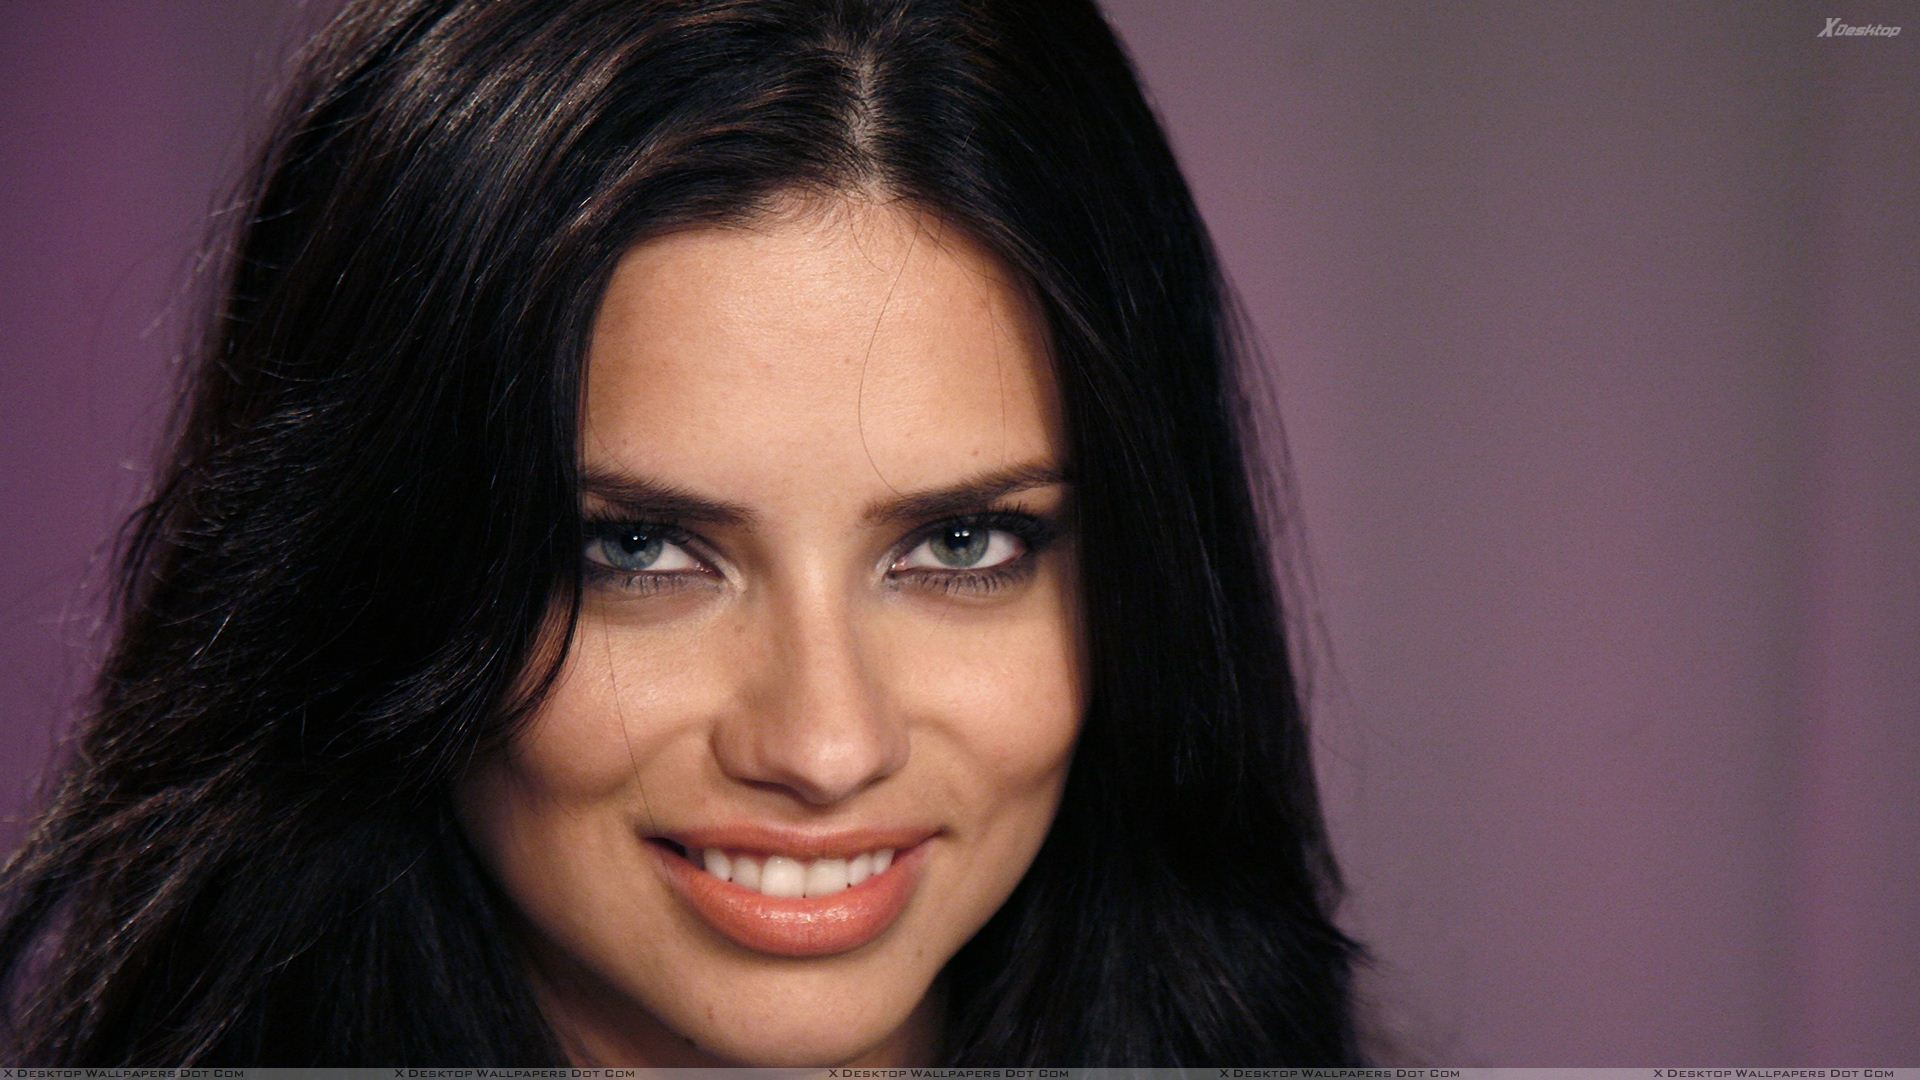 Adriana lima smiling red lips face closeup wallpaper you are viewing wallpaper titled adriana lima voltagebd Gallery